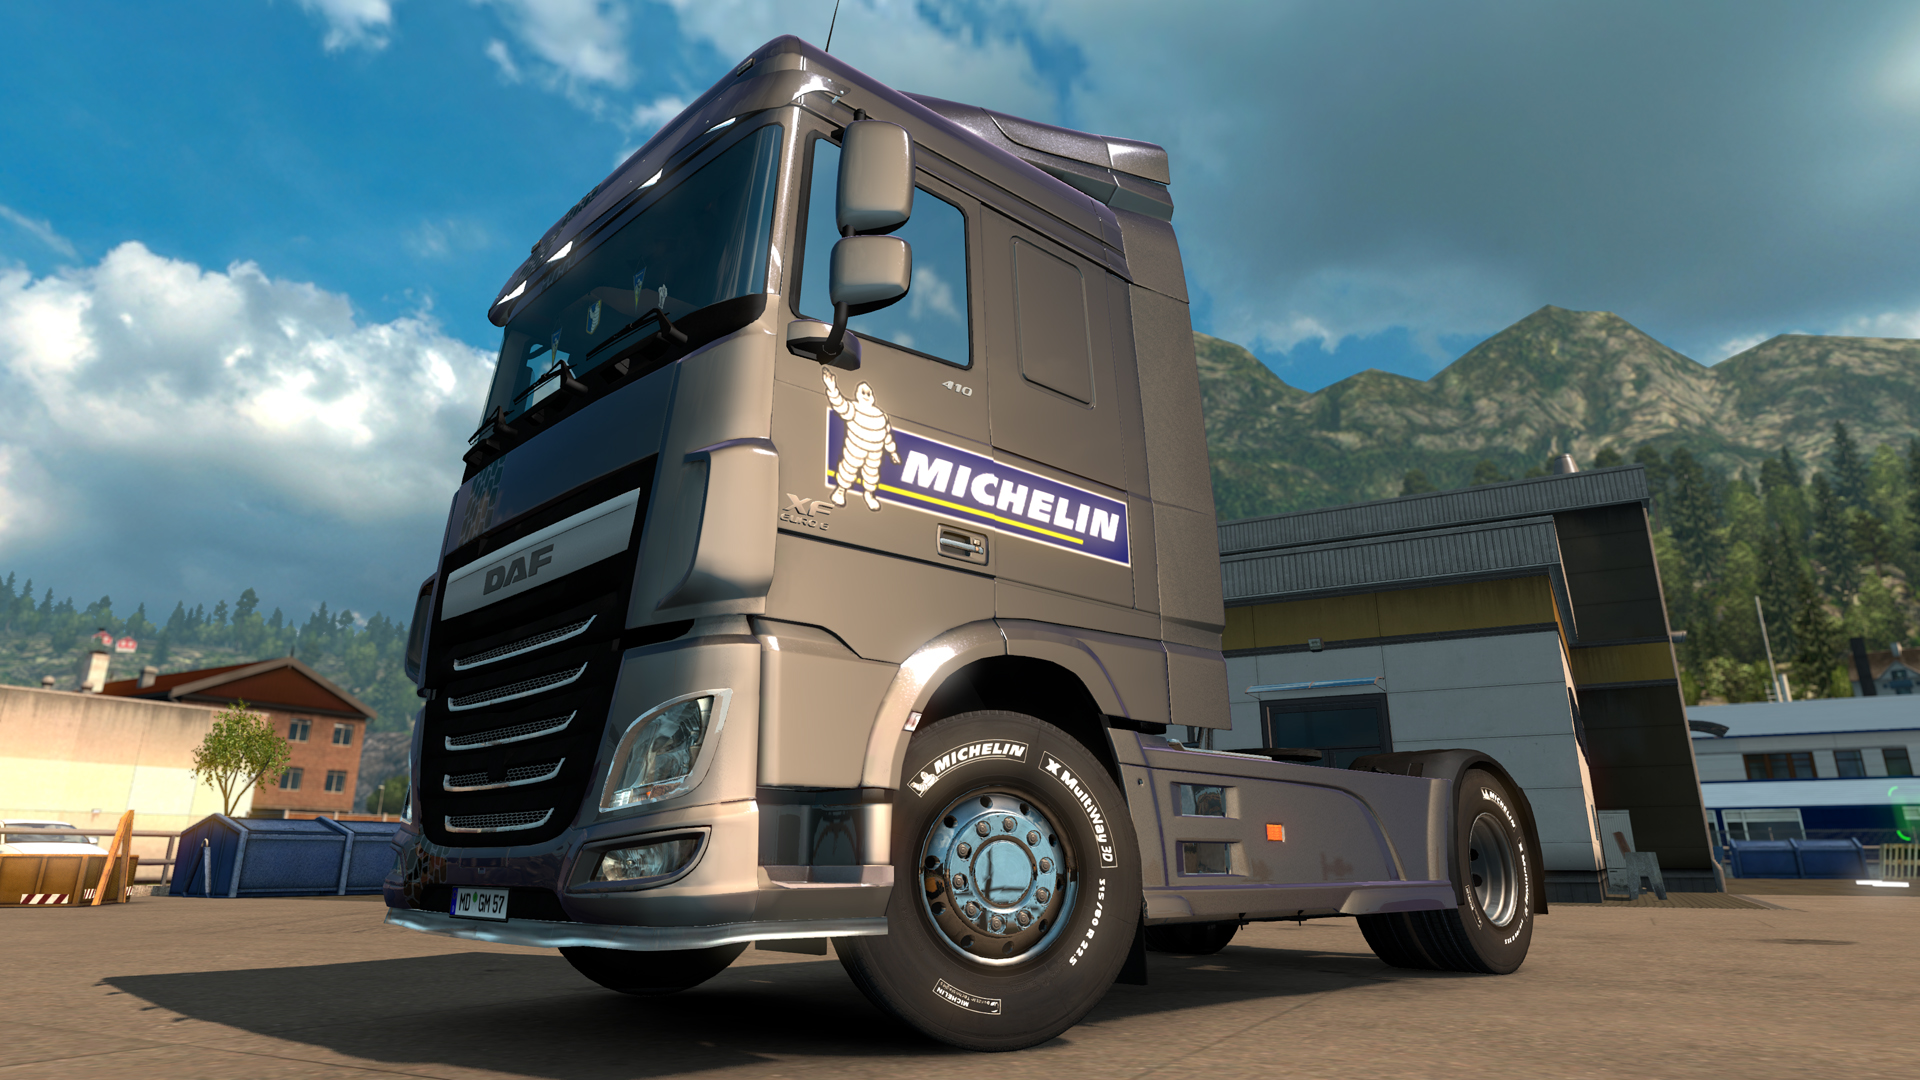 Verbazingwekkend Euro Truck Simulator 2 - Michelin Fan Pack on Steam NA-52